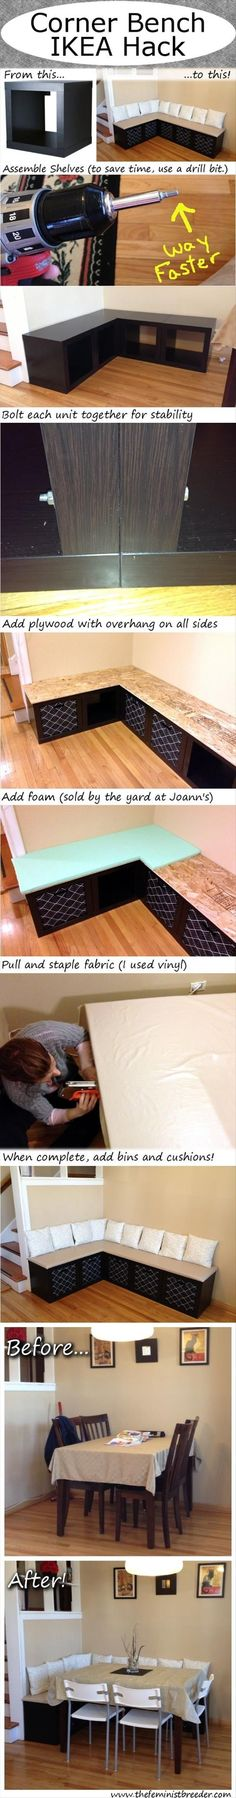 DIY Ikea Corner Bench Tutorial Pictures, Photos, and Images for Facebook, Tumblr, Pinterest, and Twitter